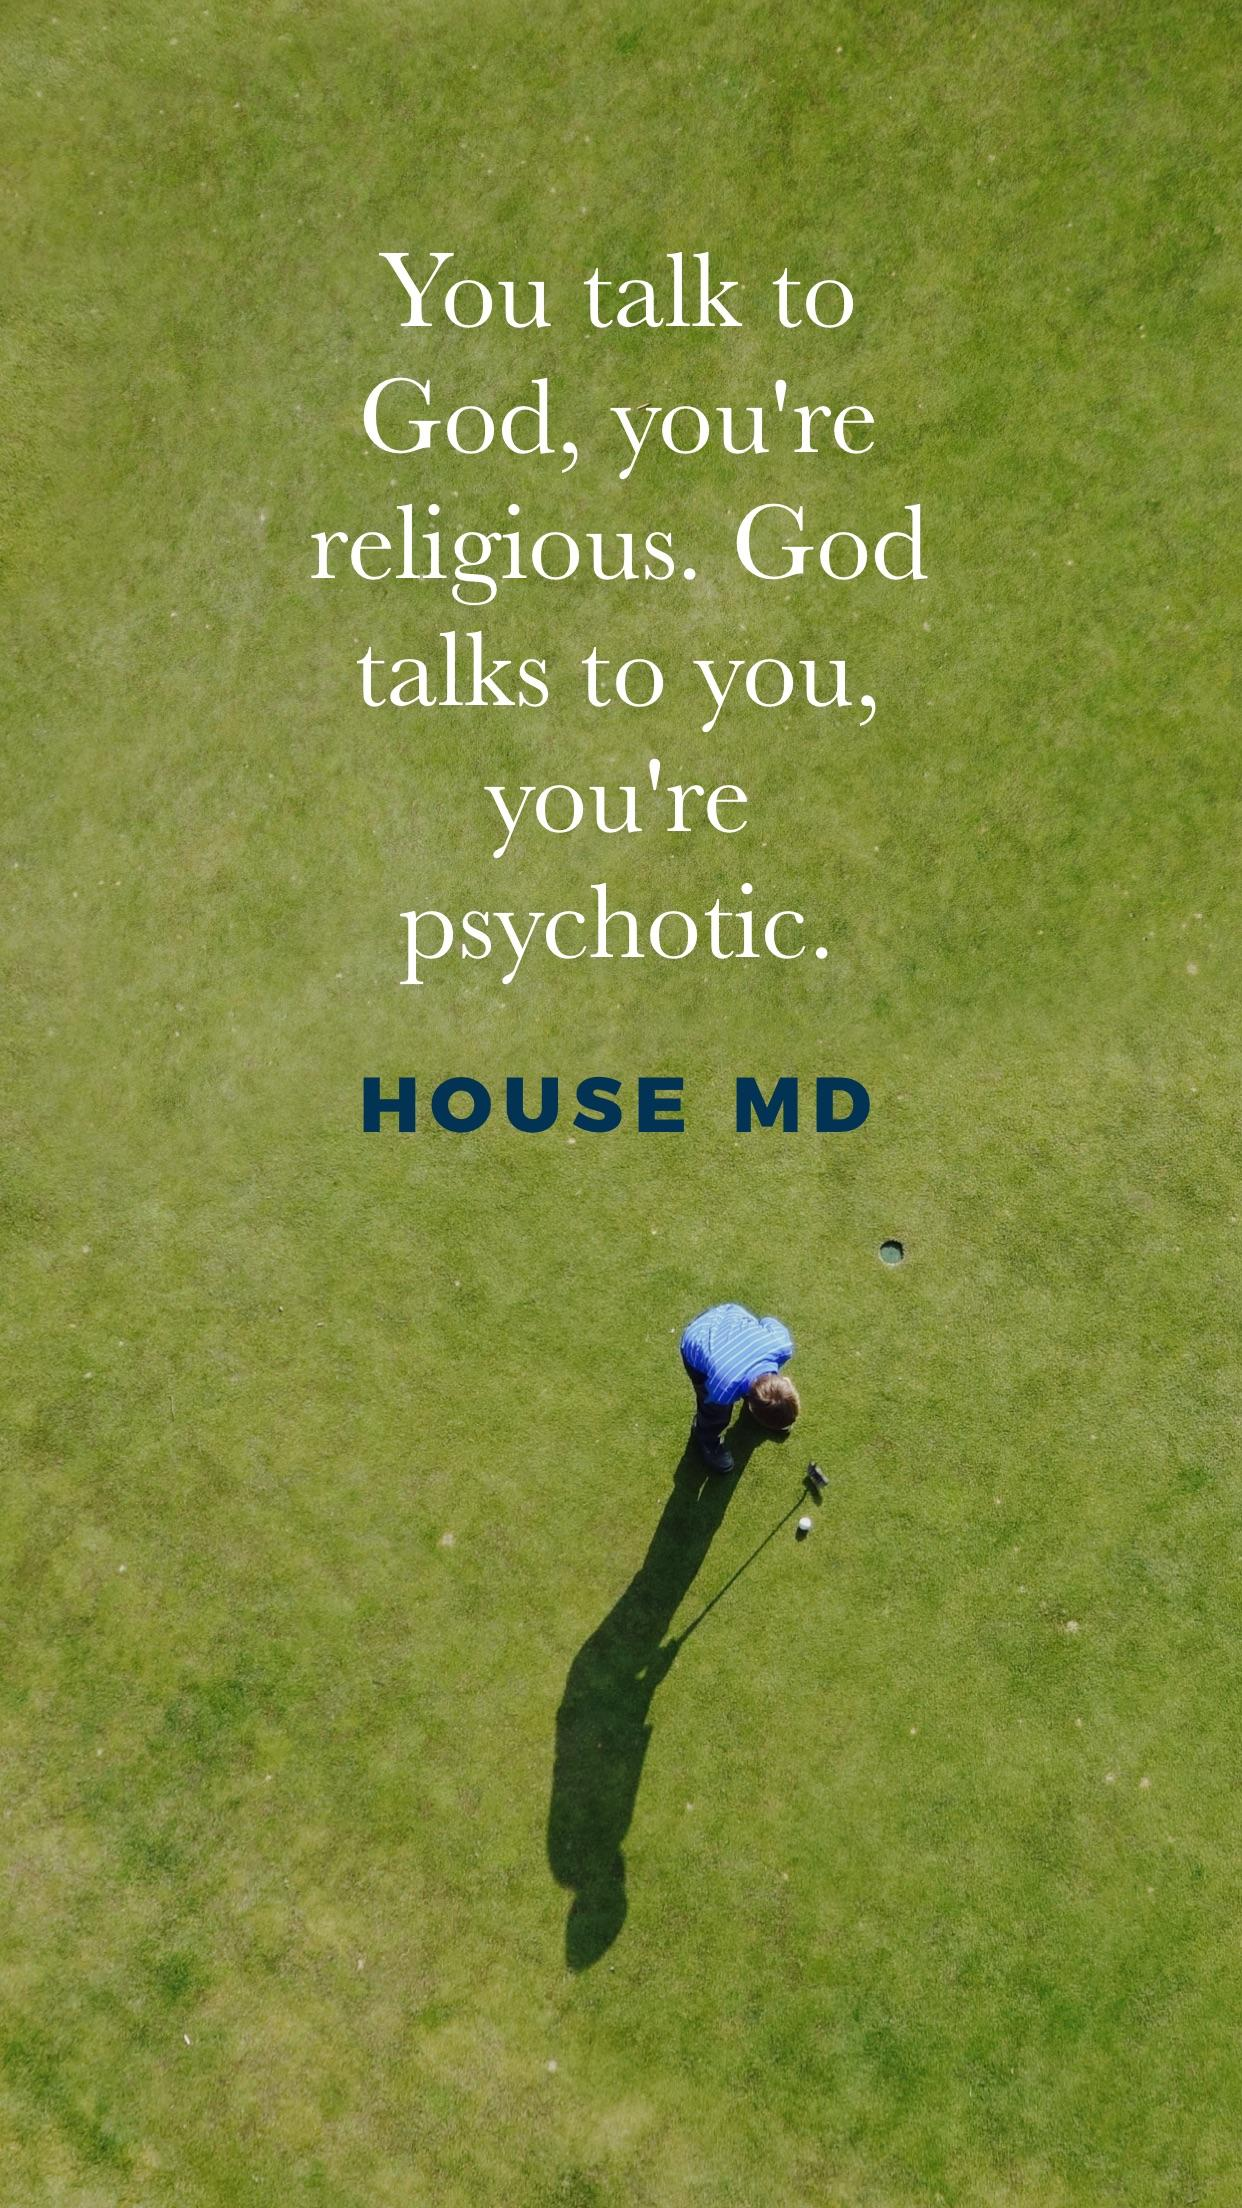 """You talk to god…"" – House MD [1242×2208]"